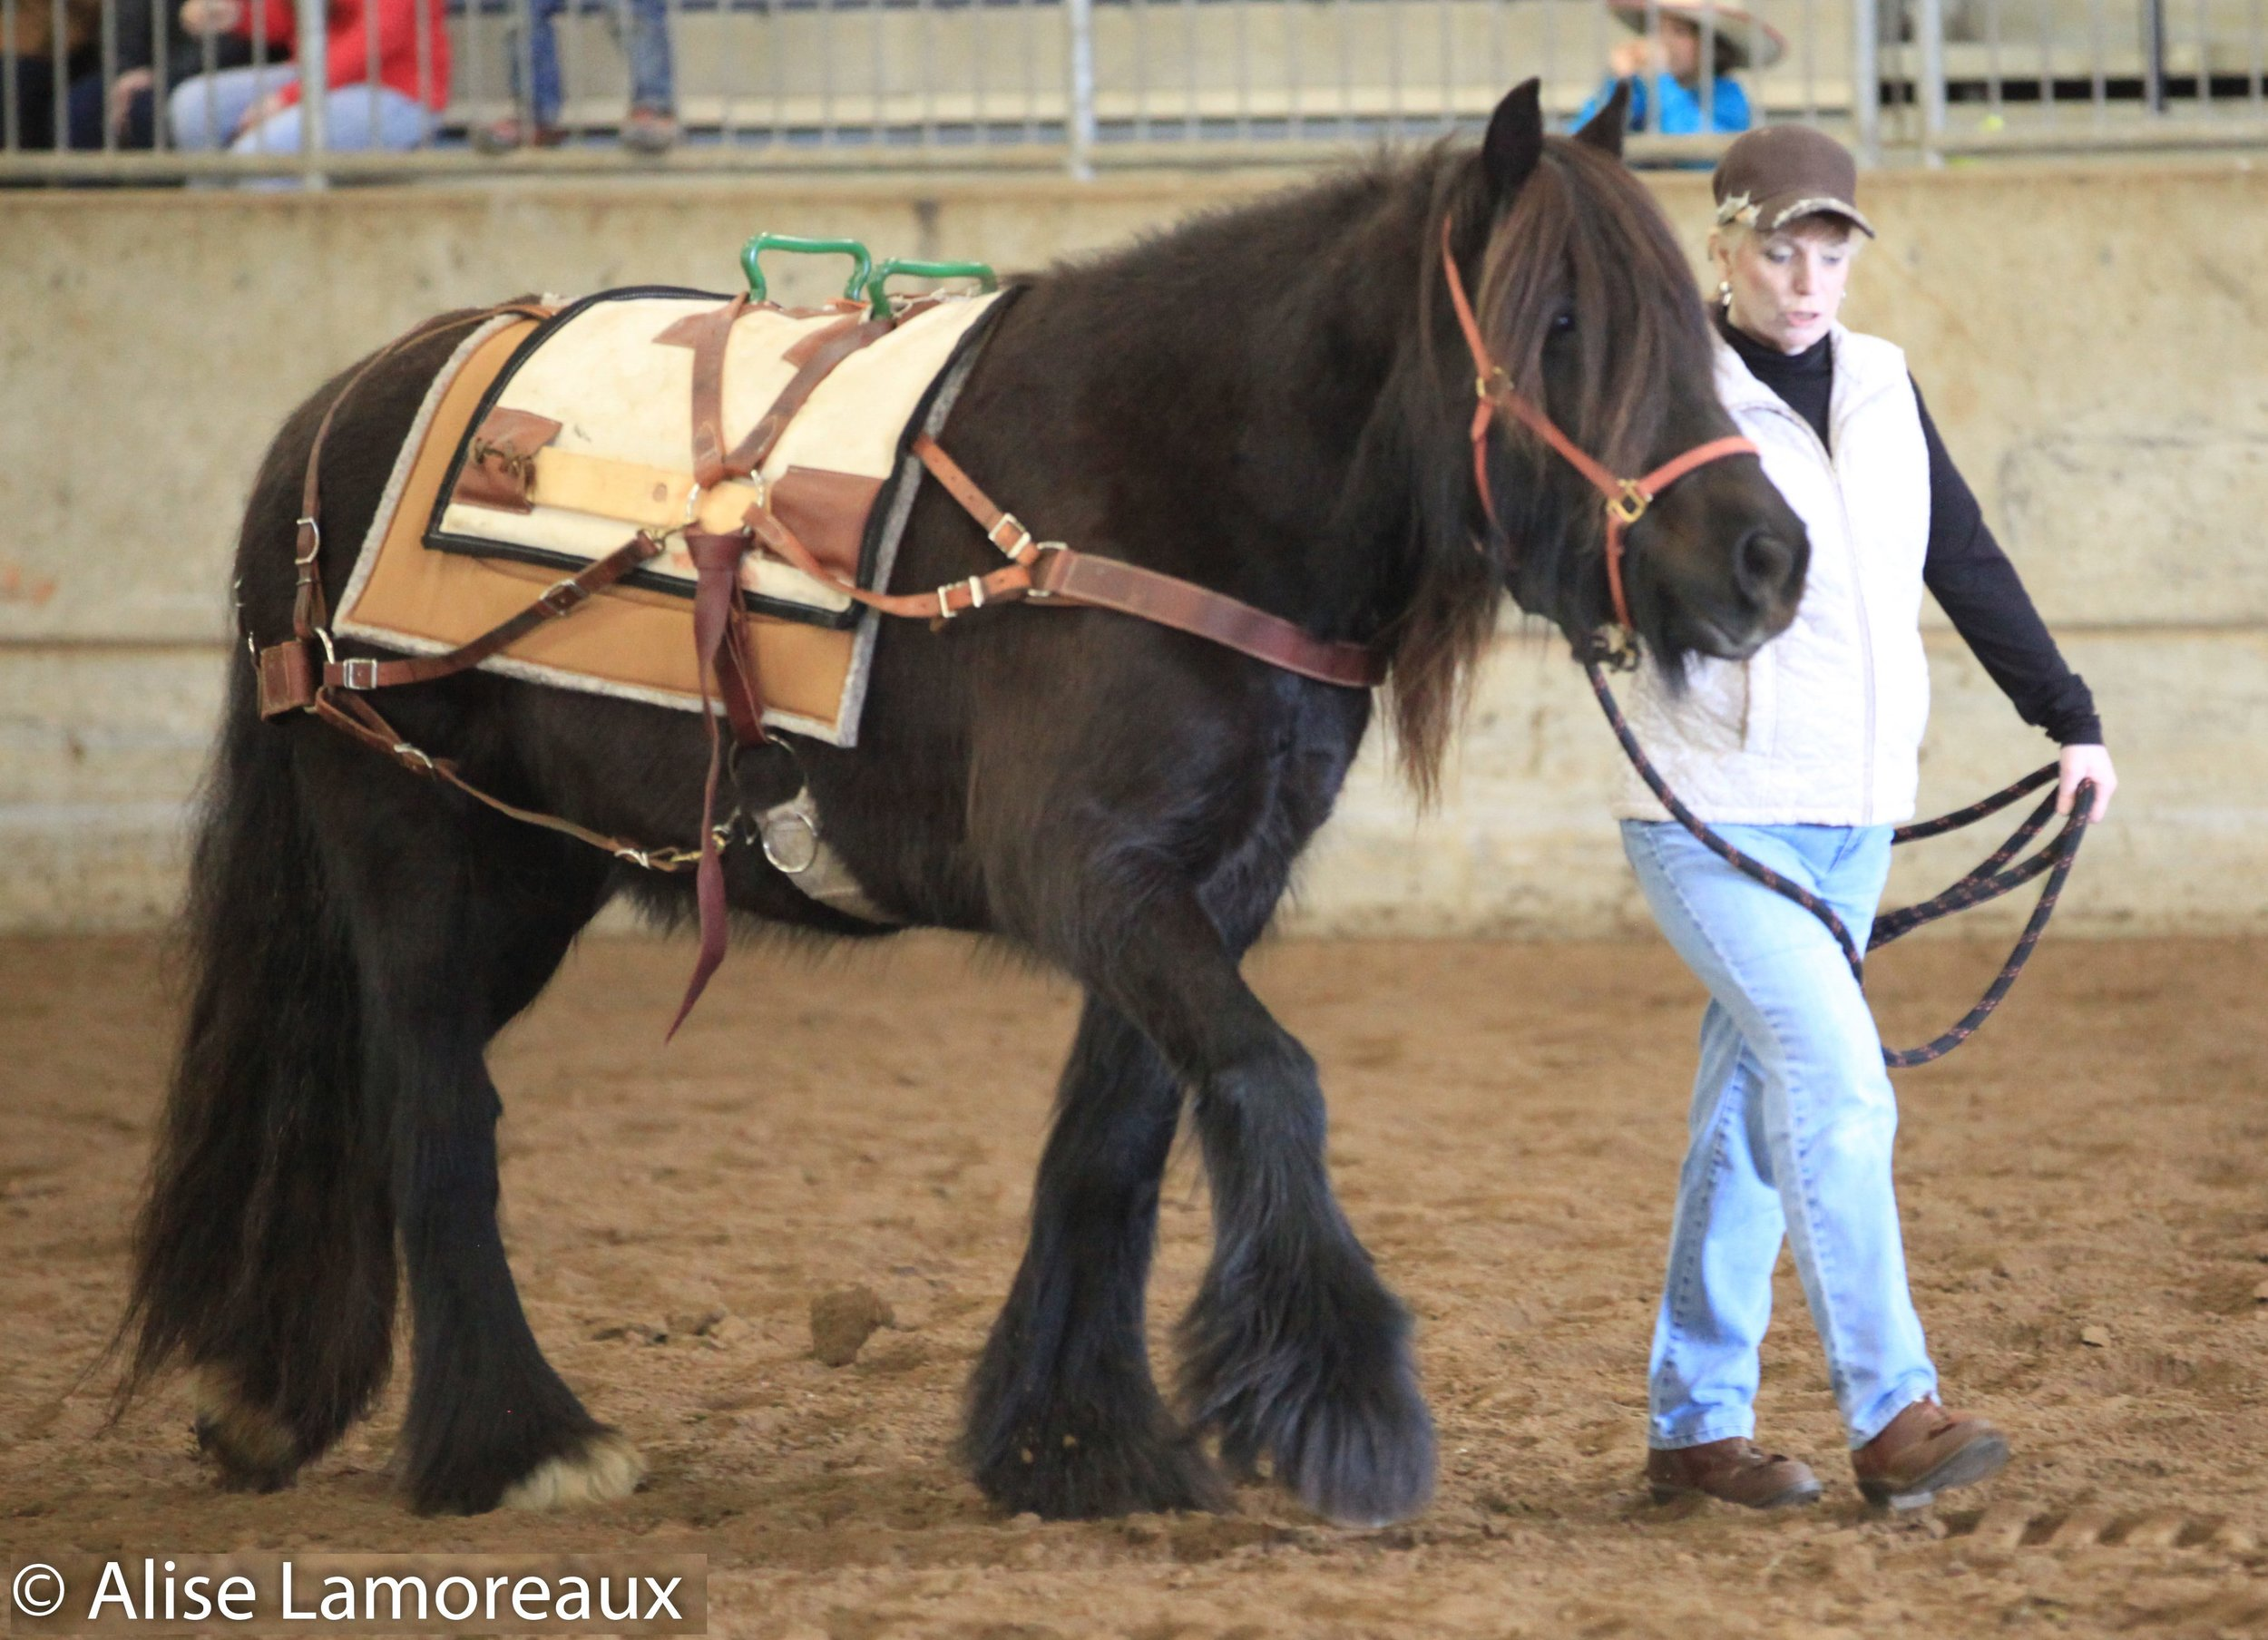 Ebony Jan carries a pack saddle for the 2017 NW Horse Expo. IMG_8809 optimized cropped optimized.jpg